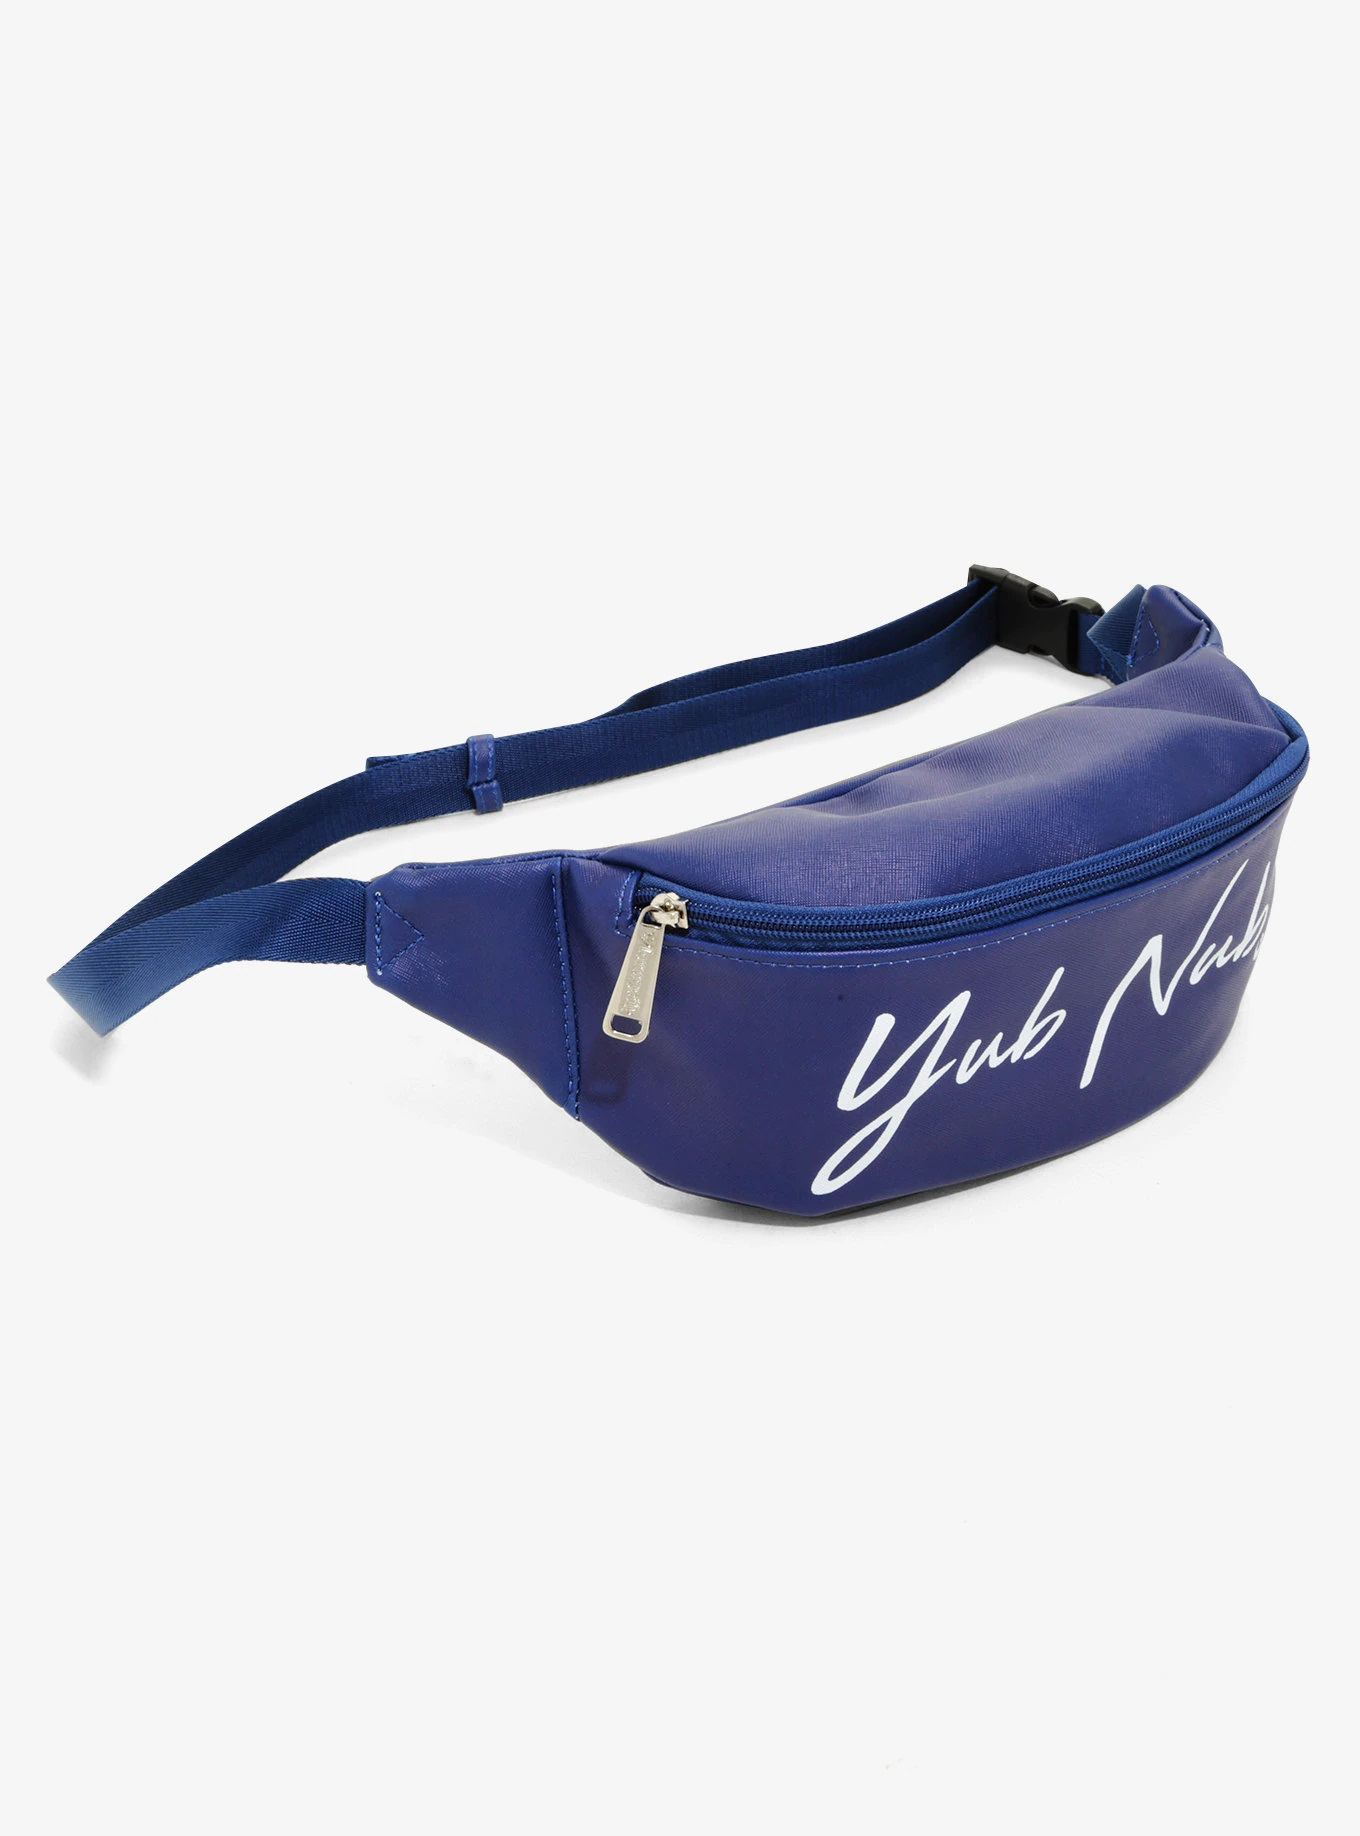 Loungefly x Star Wars Ewok Yub Nub Belt Bag at Box Lunch